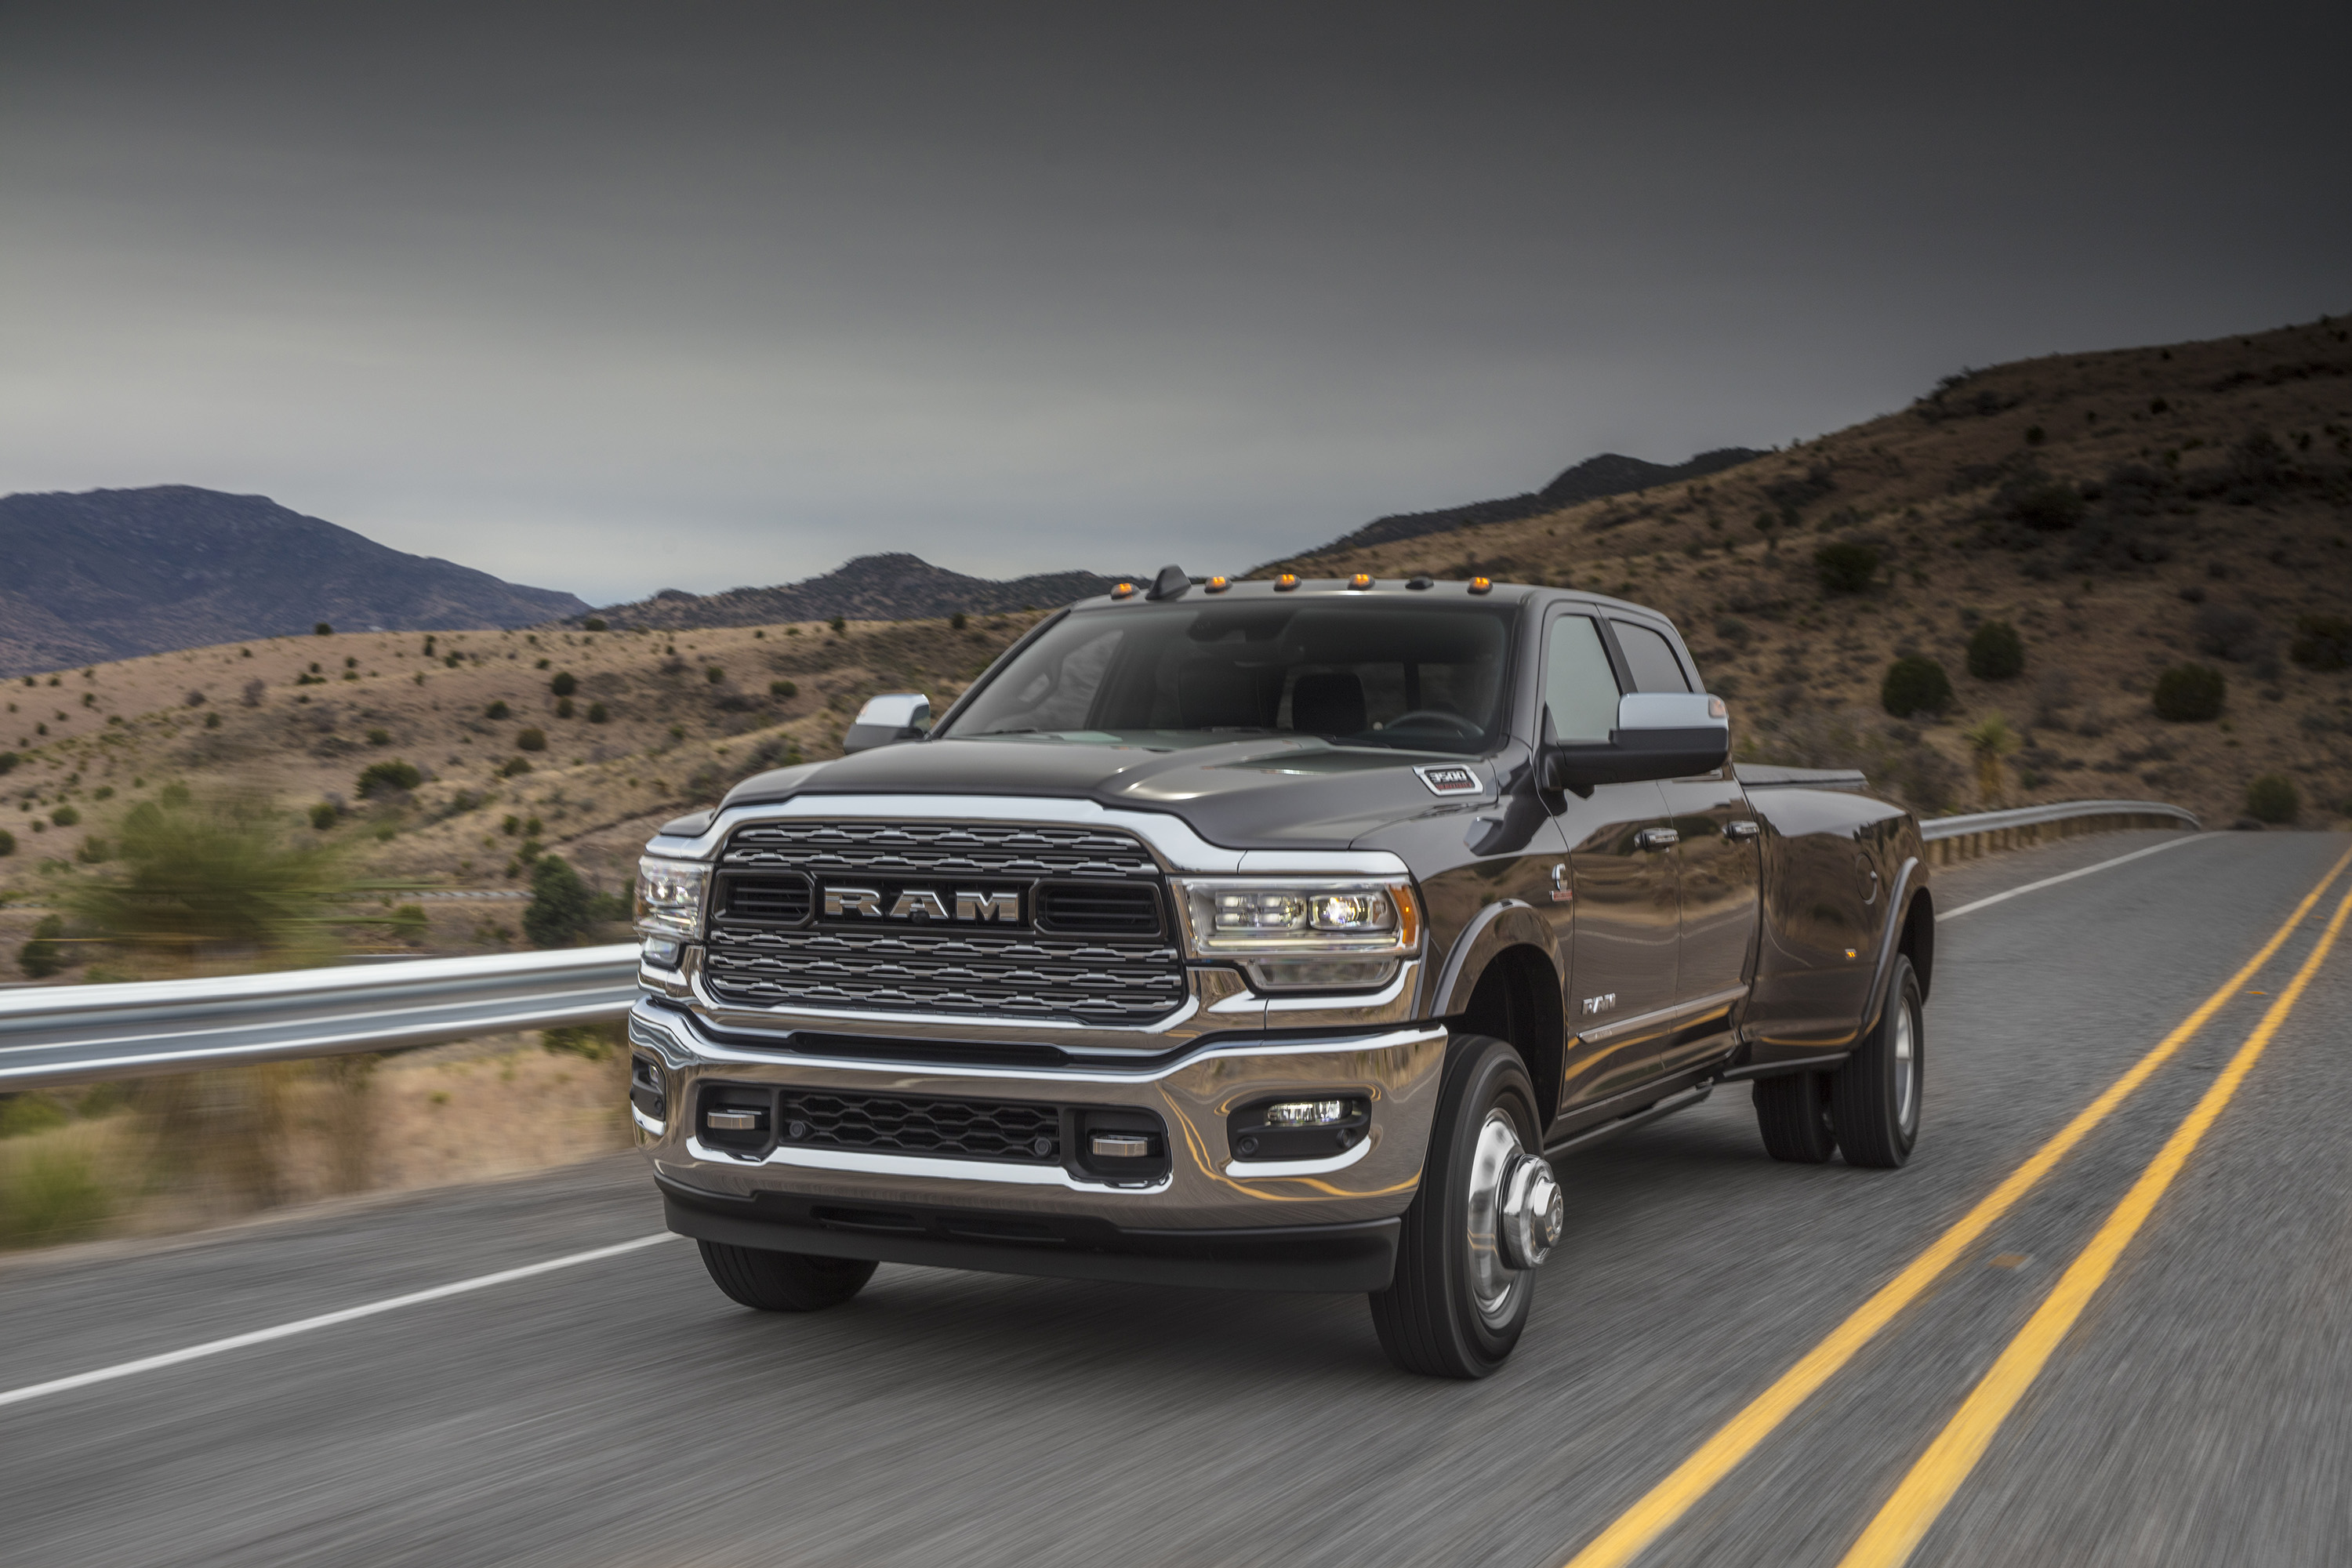 2019 Ram 3500 Heavy Duty Limited Crew Cab Dually Wallpapers 28